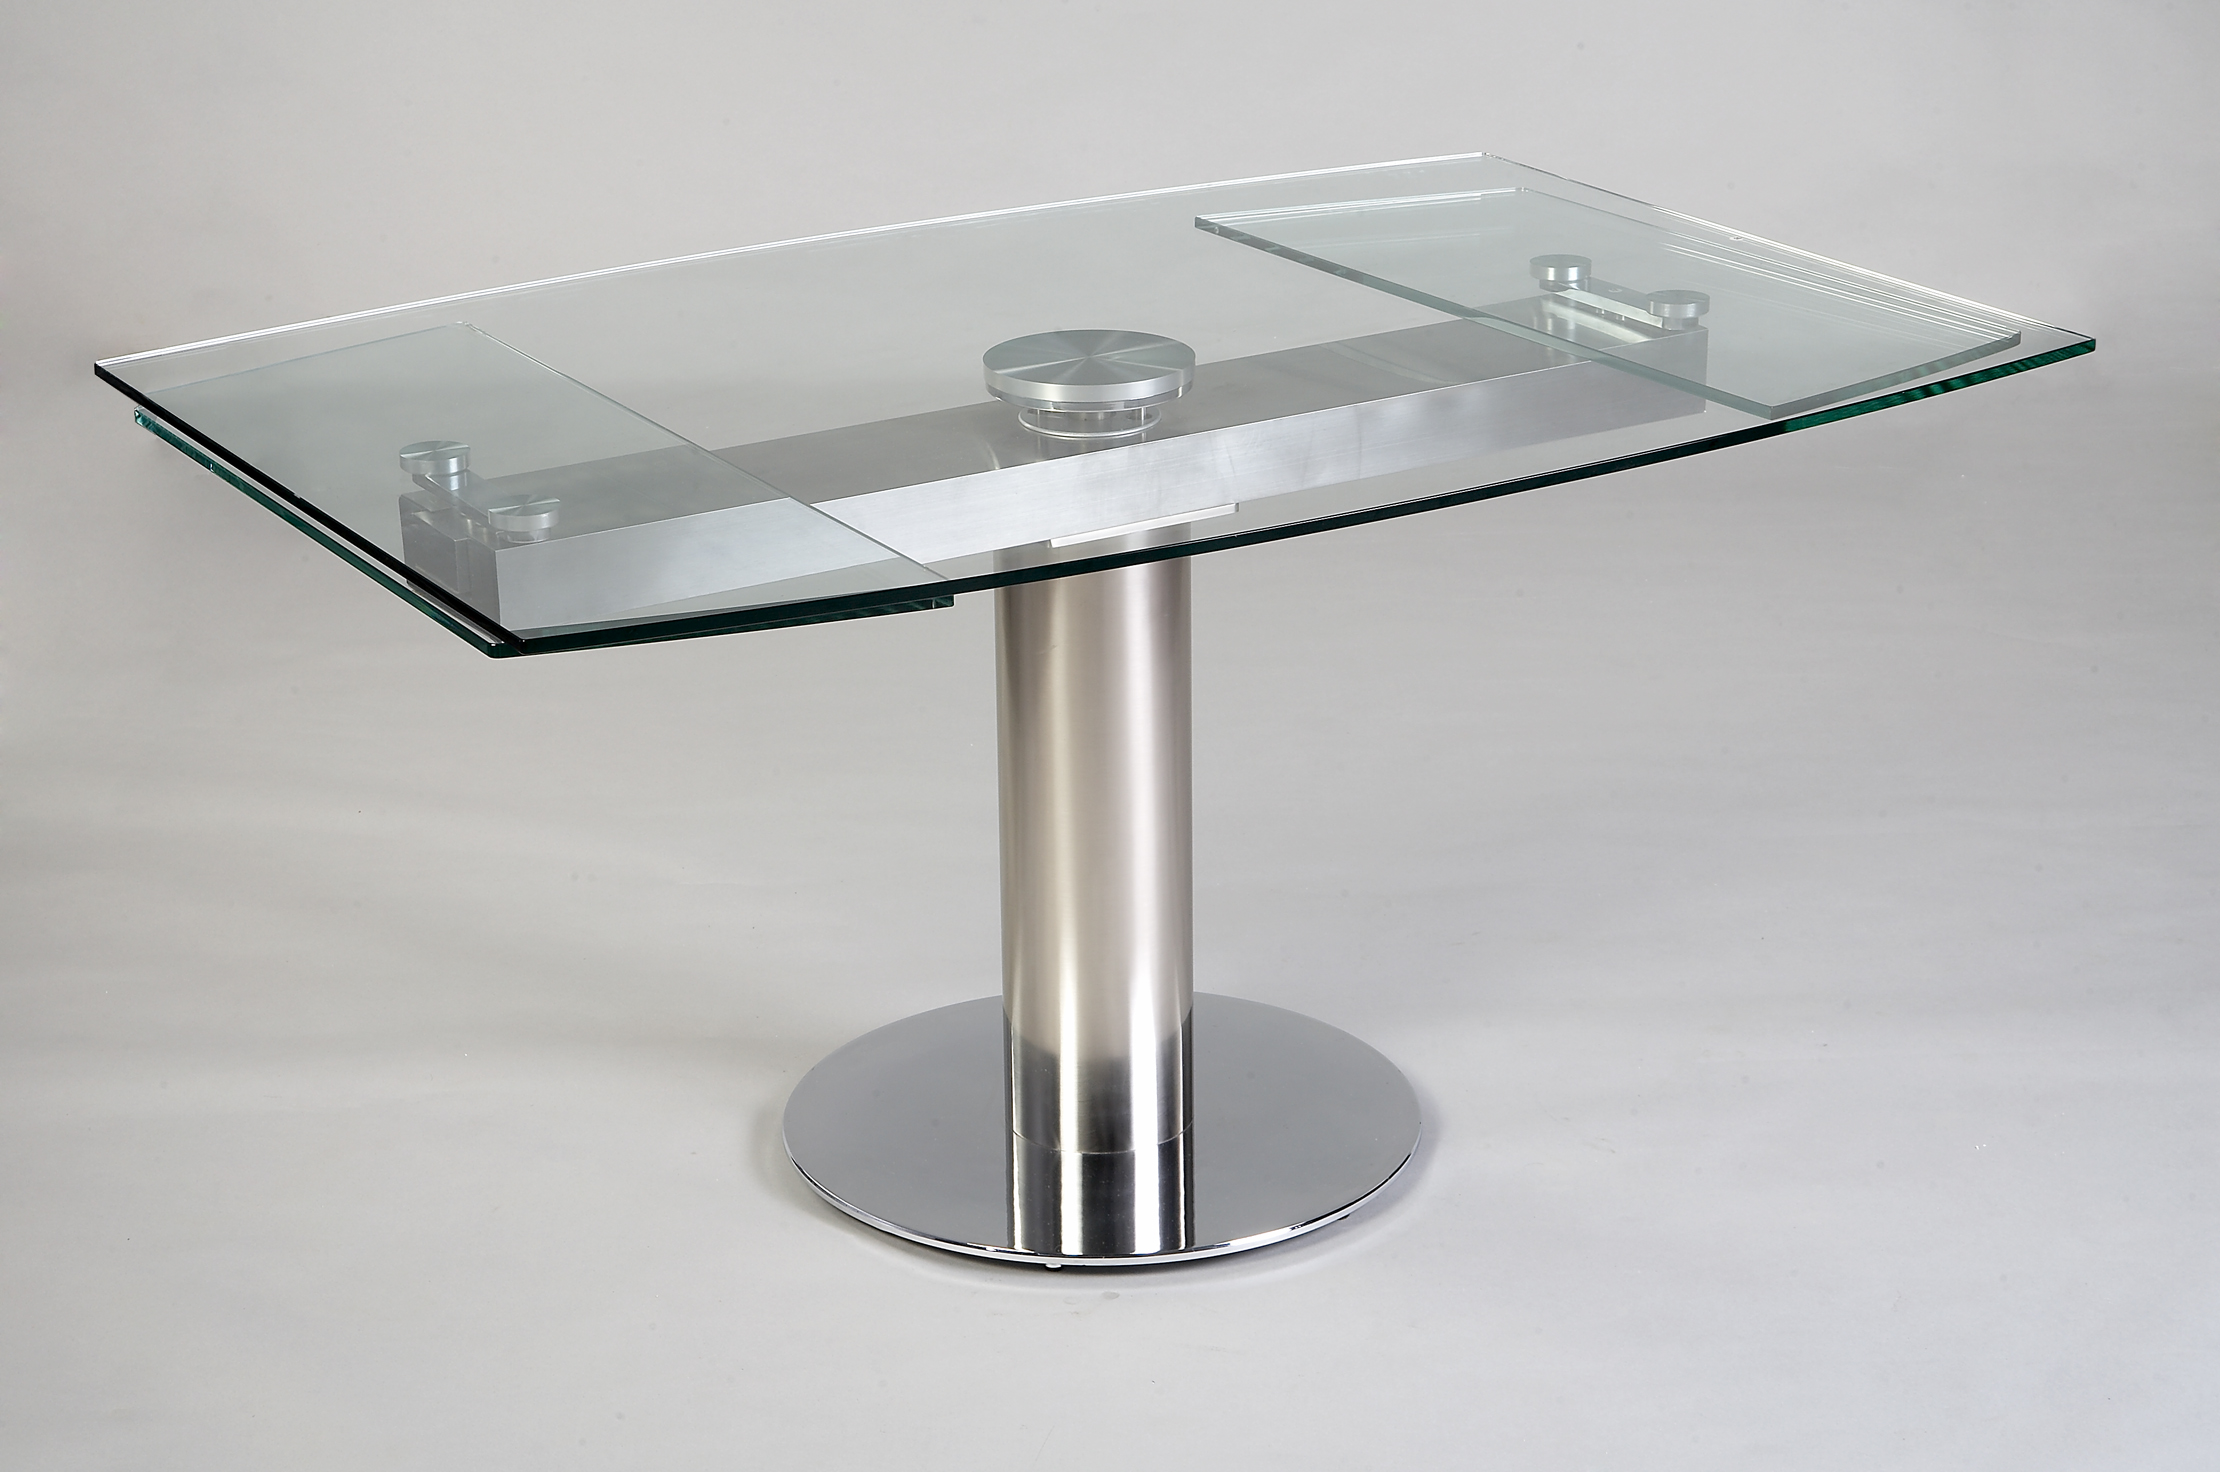 Table contemporaine en verre avec rallonge - Table en verre avec rallonges ...